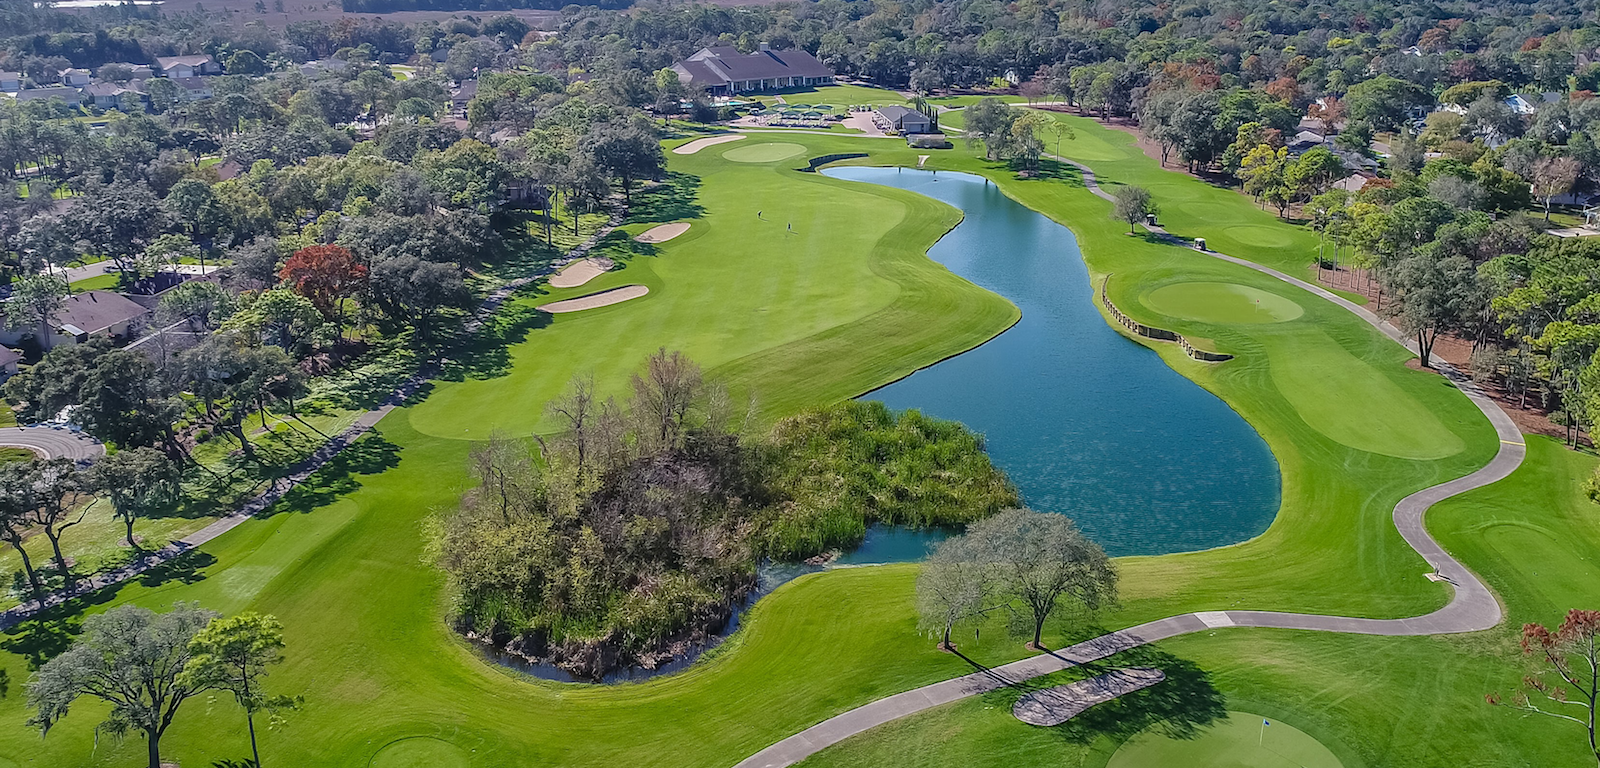 Golfing - aerial view of golf course